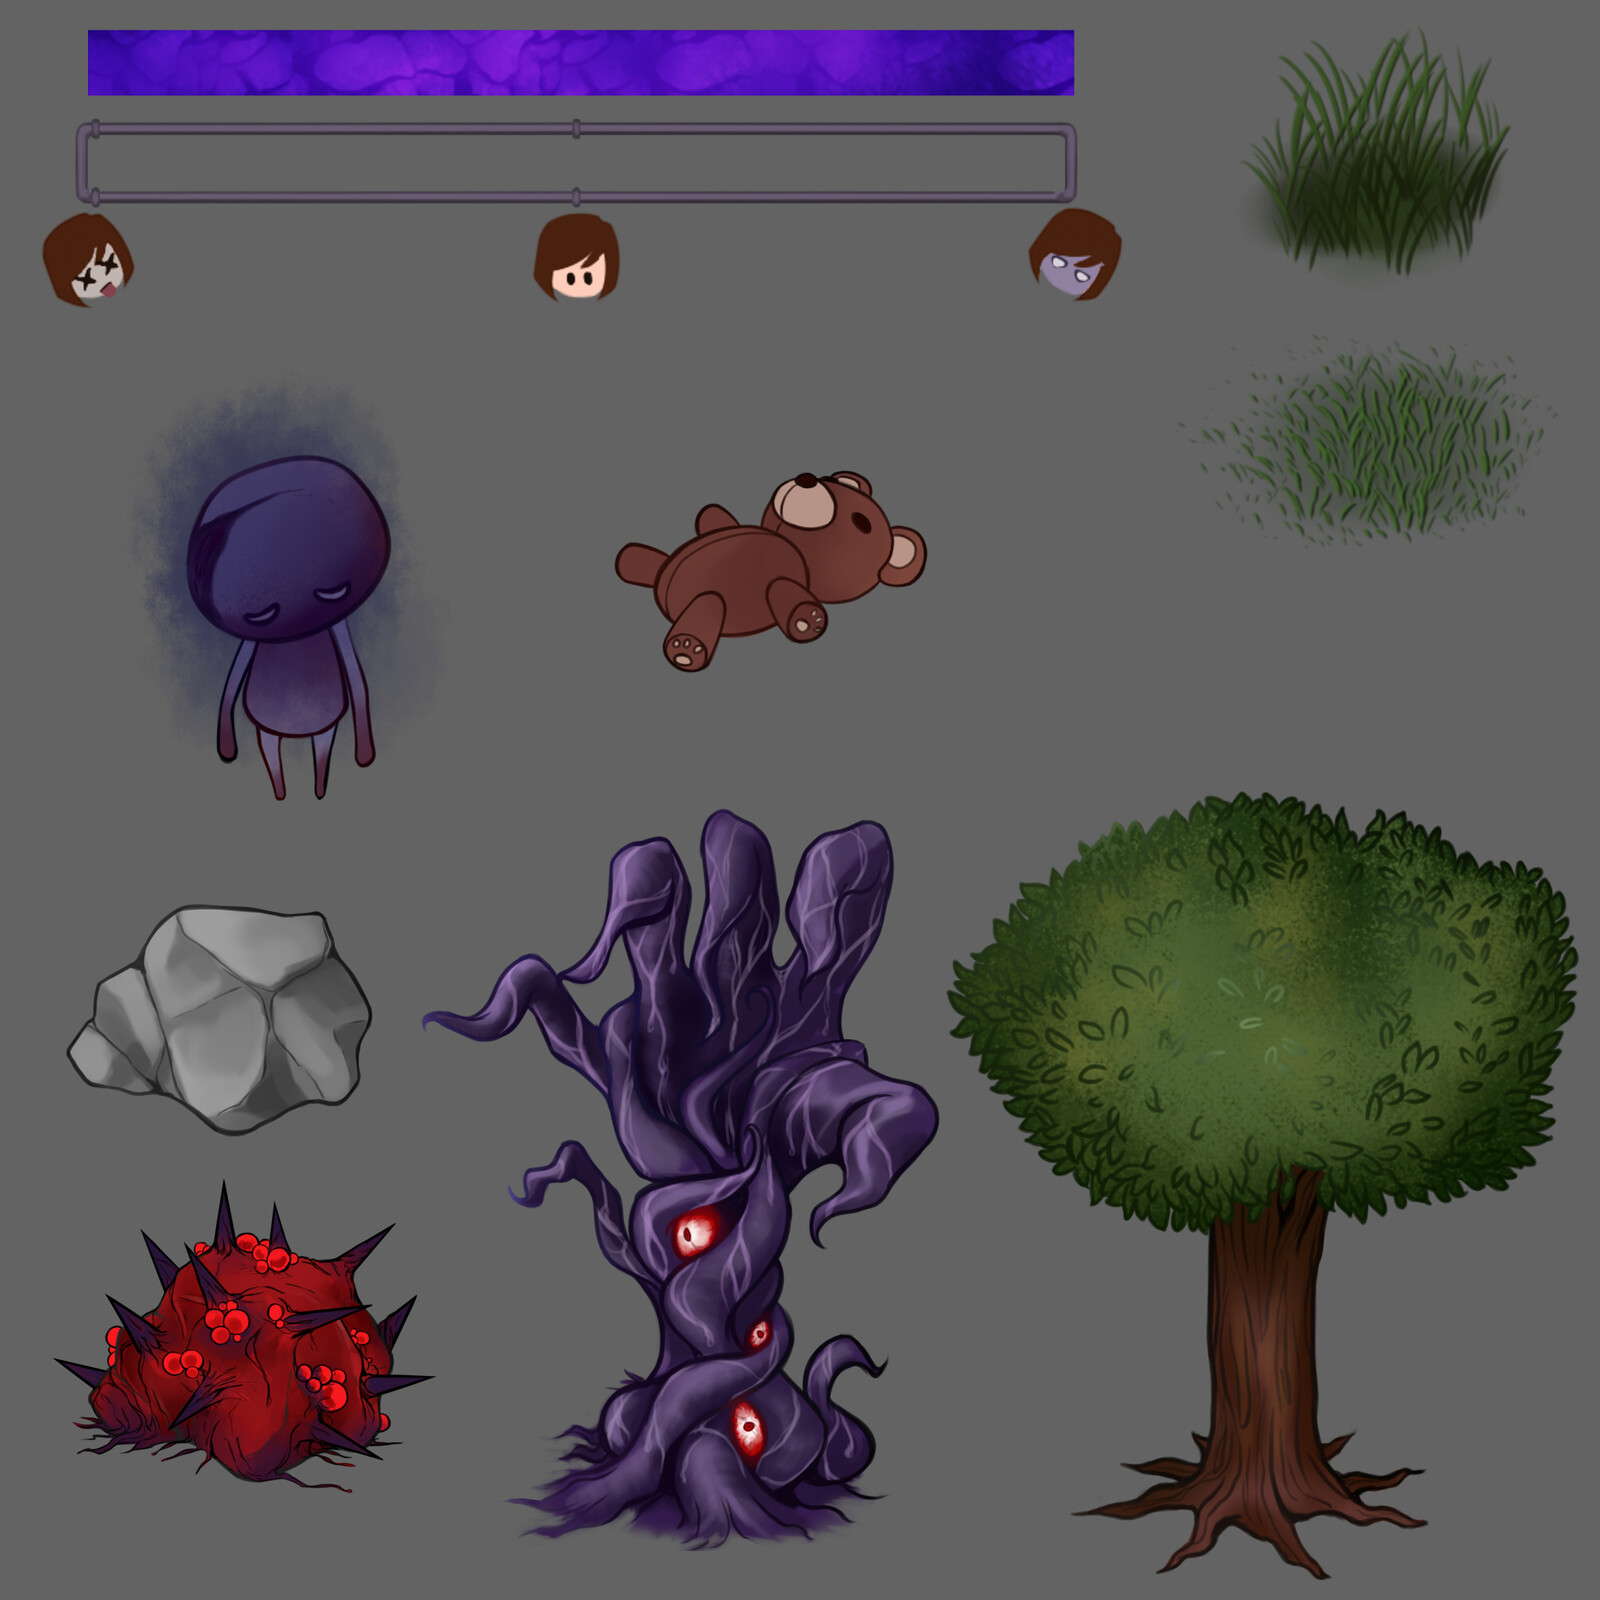 Assets for the gamejam game, trees and rocks can be transformed into a demonic version to release some energy